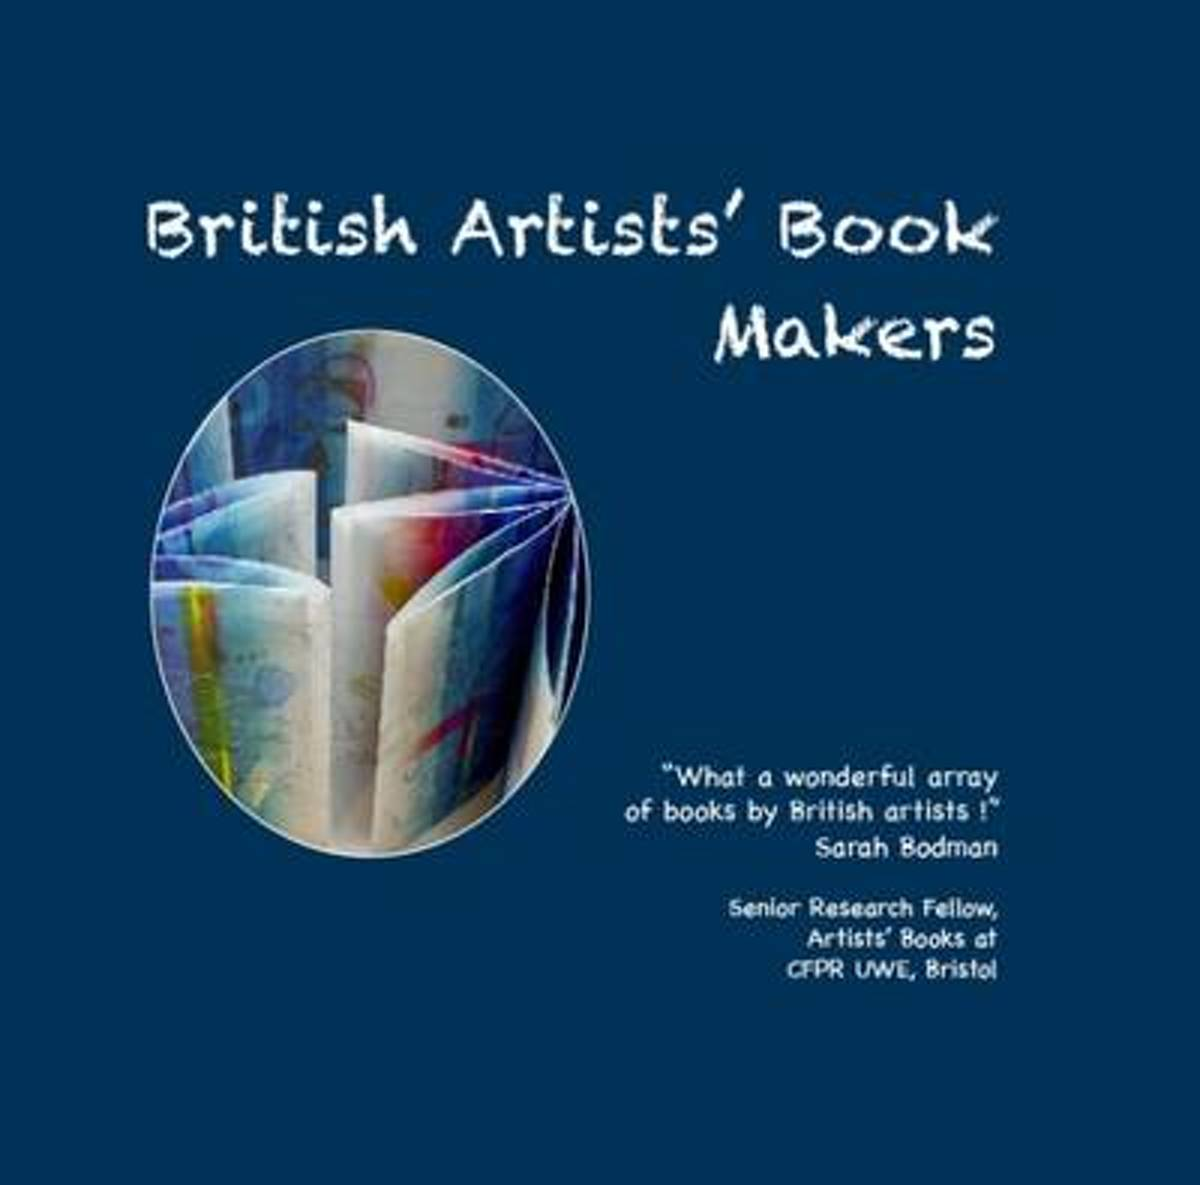 British Artists' Book Makers